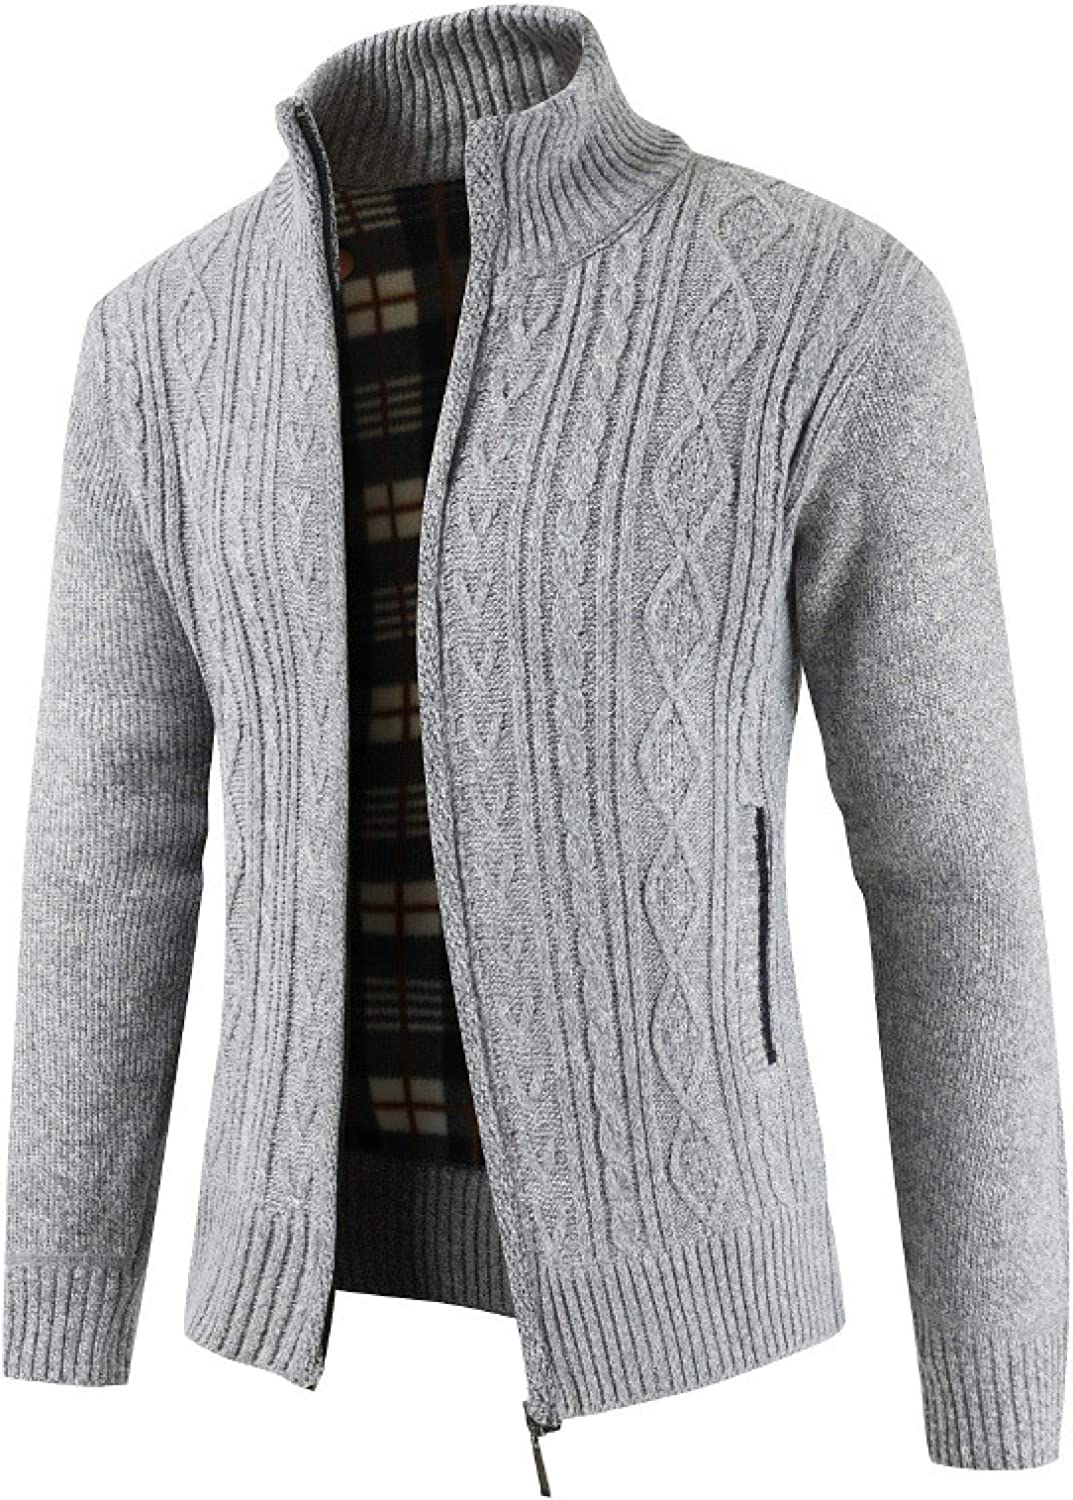 Men's Solid Color Cardigan Sweater, Zipper Stand Collar Sweater, Long-Sleeved